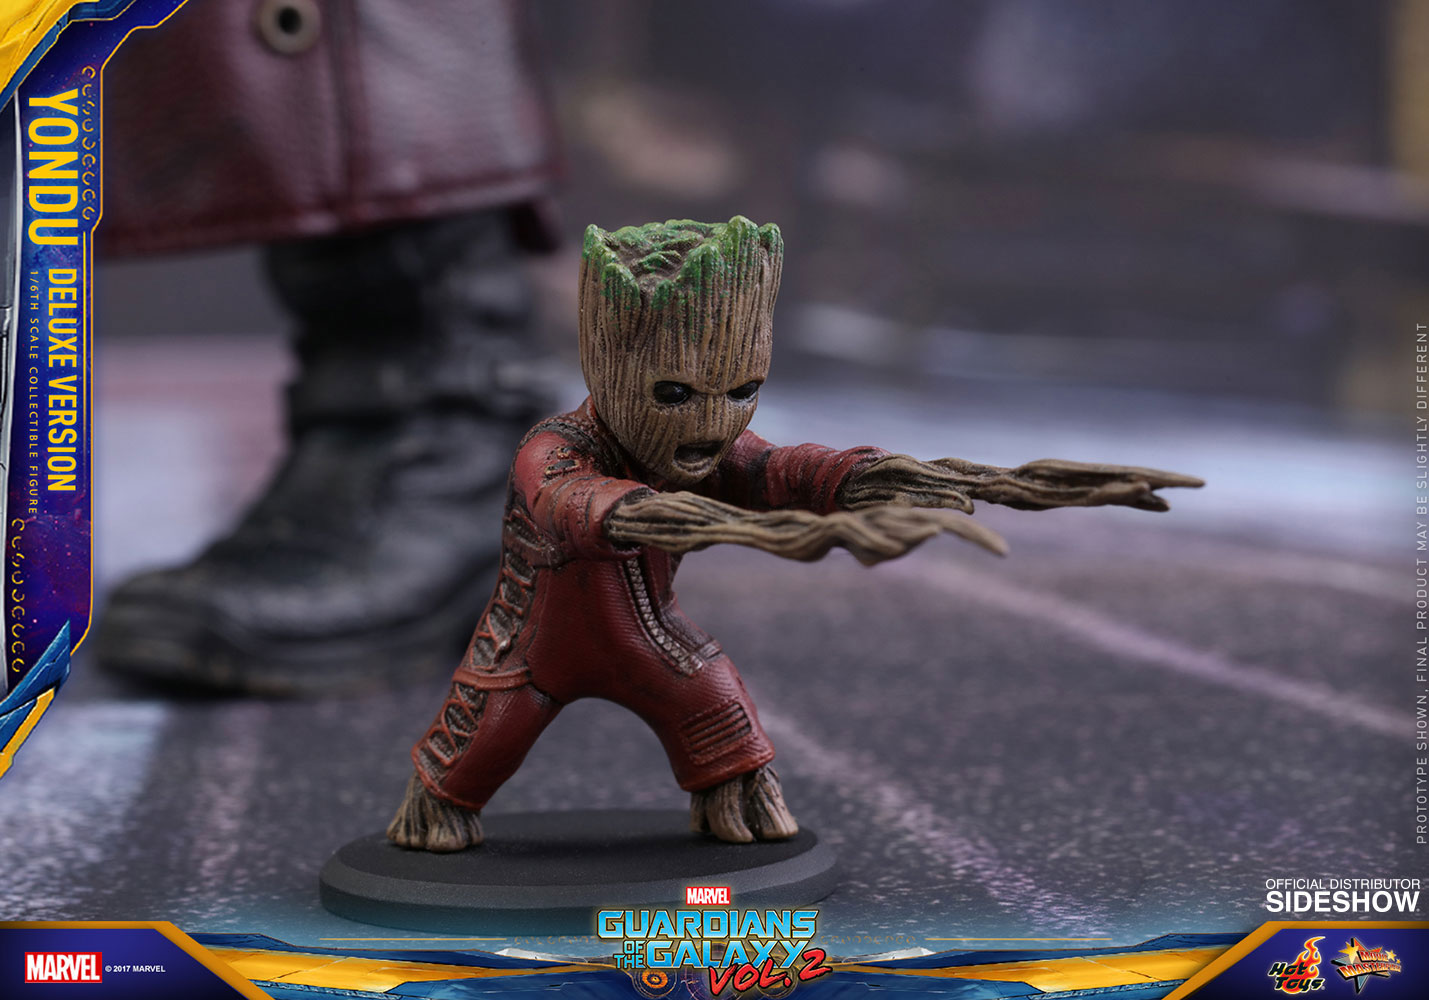 guardians-of-the-galaxy-2-yondu-hot-toys-figure-4